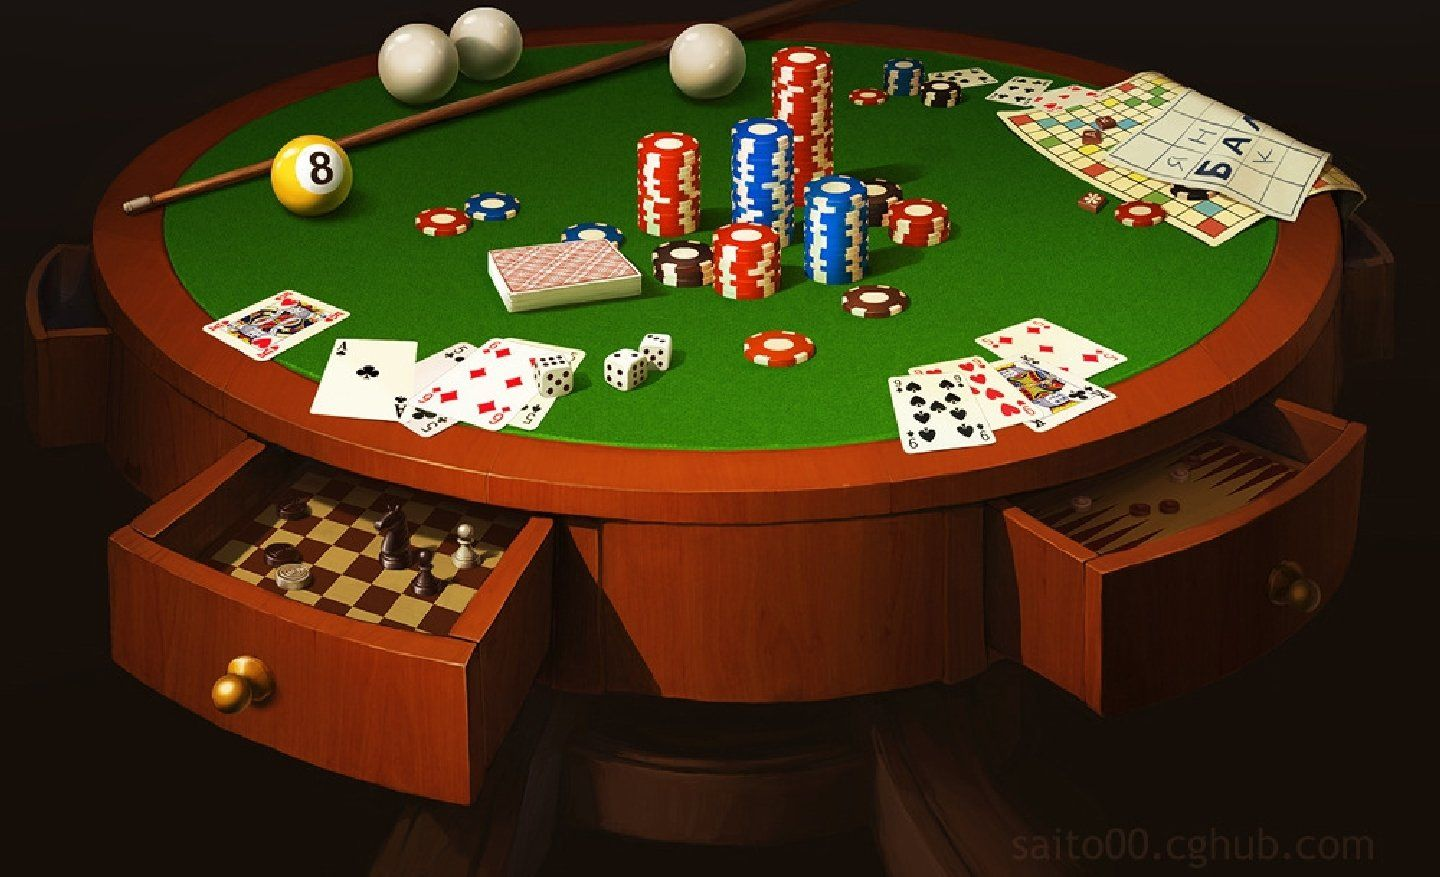 Get 50 perpetual PBN Backlinks Casino, Betting,  Poker, Judi Related High DA sites Google 1st Page Rank